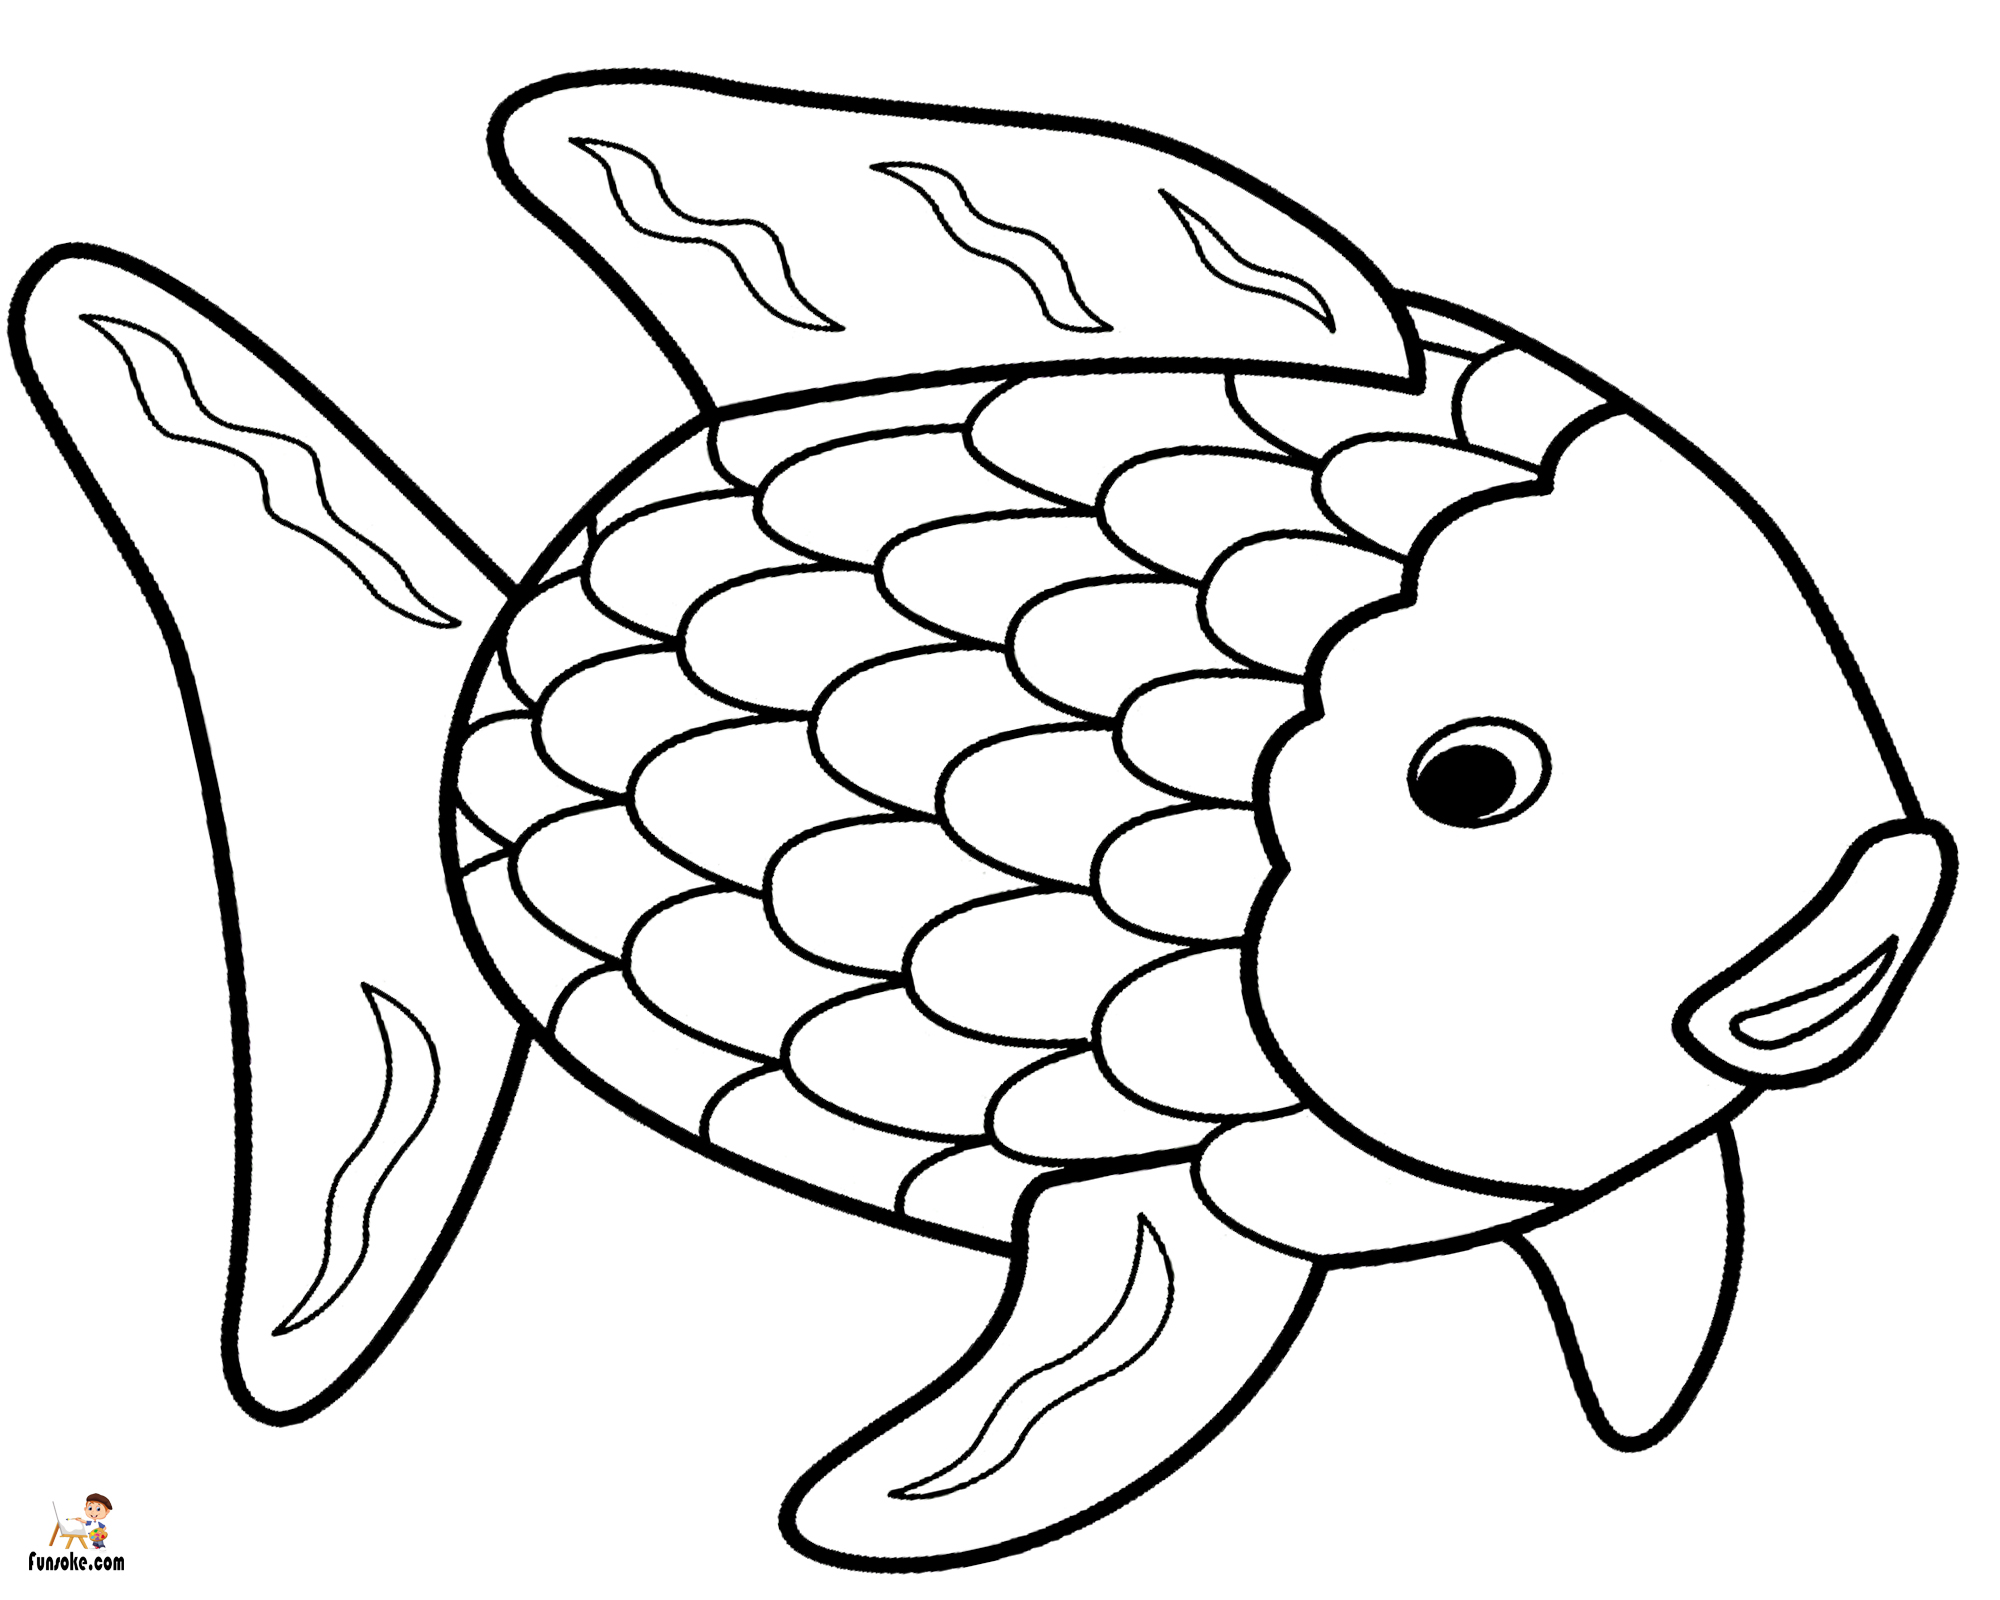 coloring fish pages simple fish coloring pages download and print for free coloring fish pages